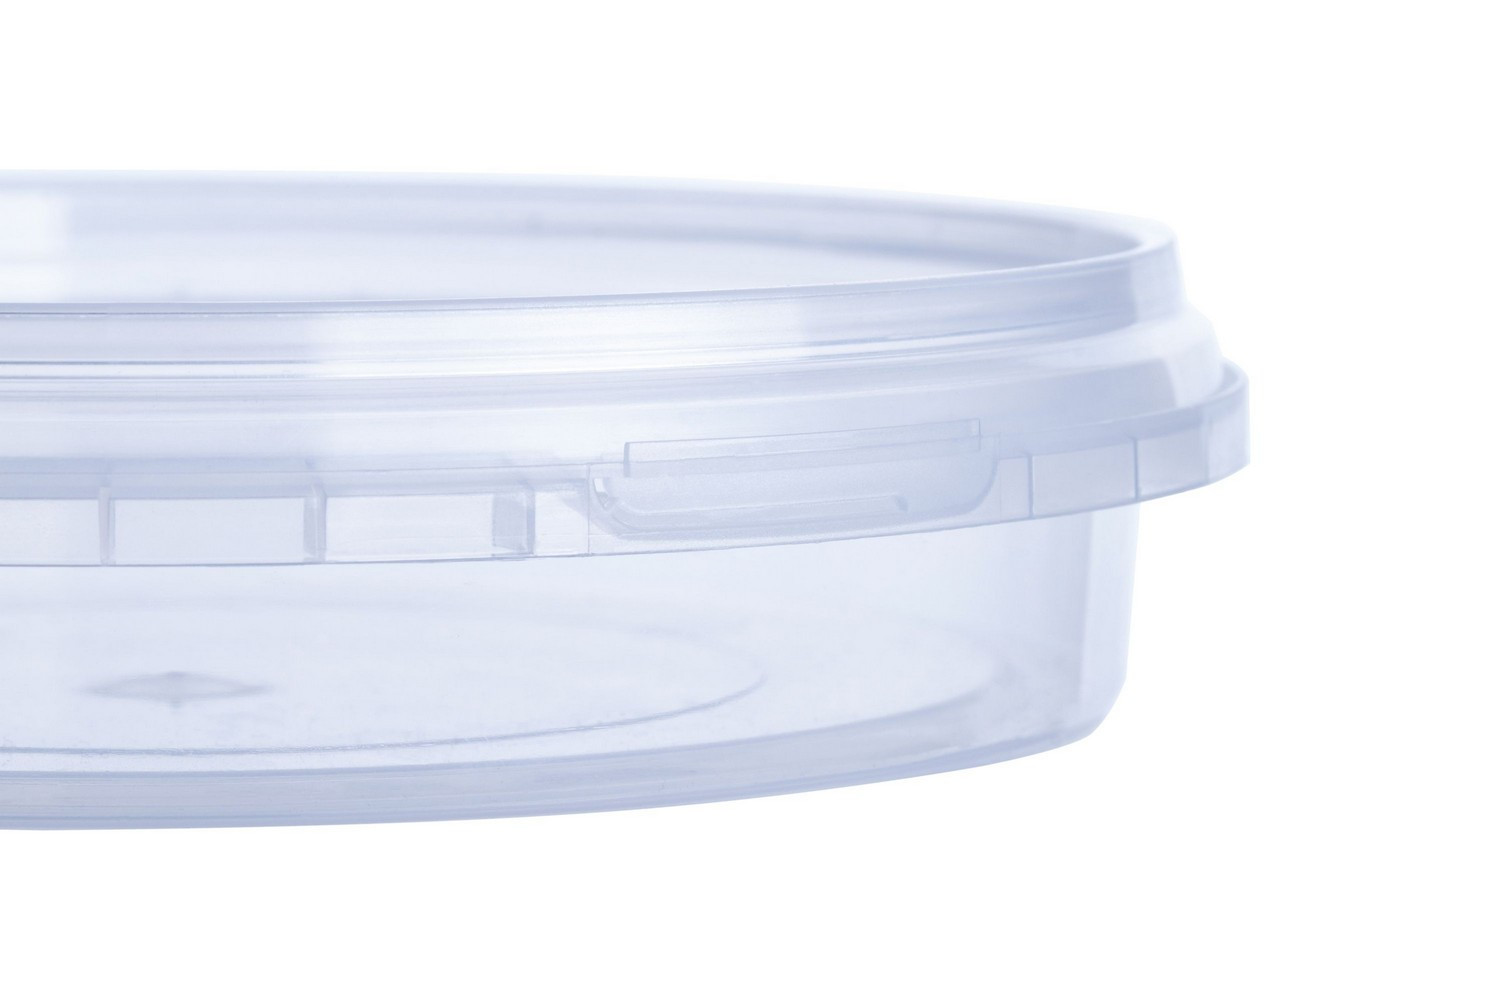 Round PP clear coloured fod containers 180 ml capacity with tamper evidence